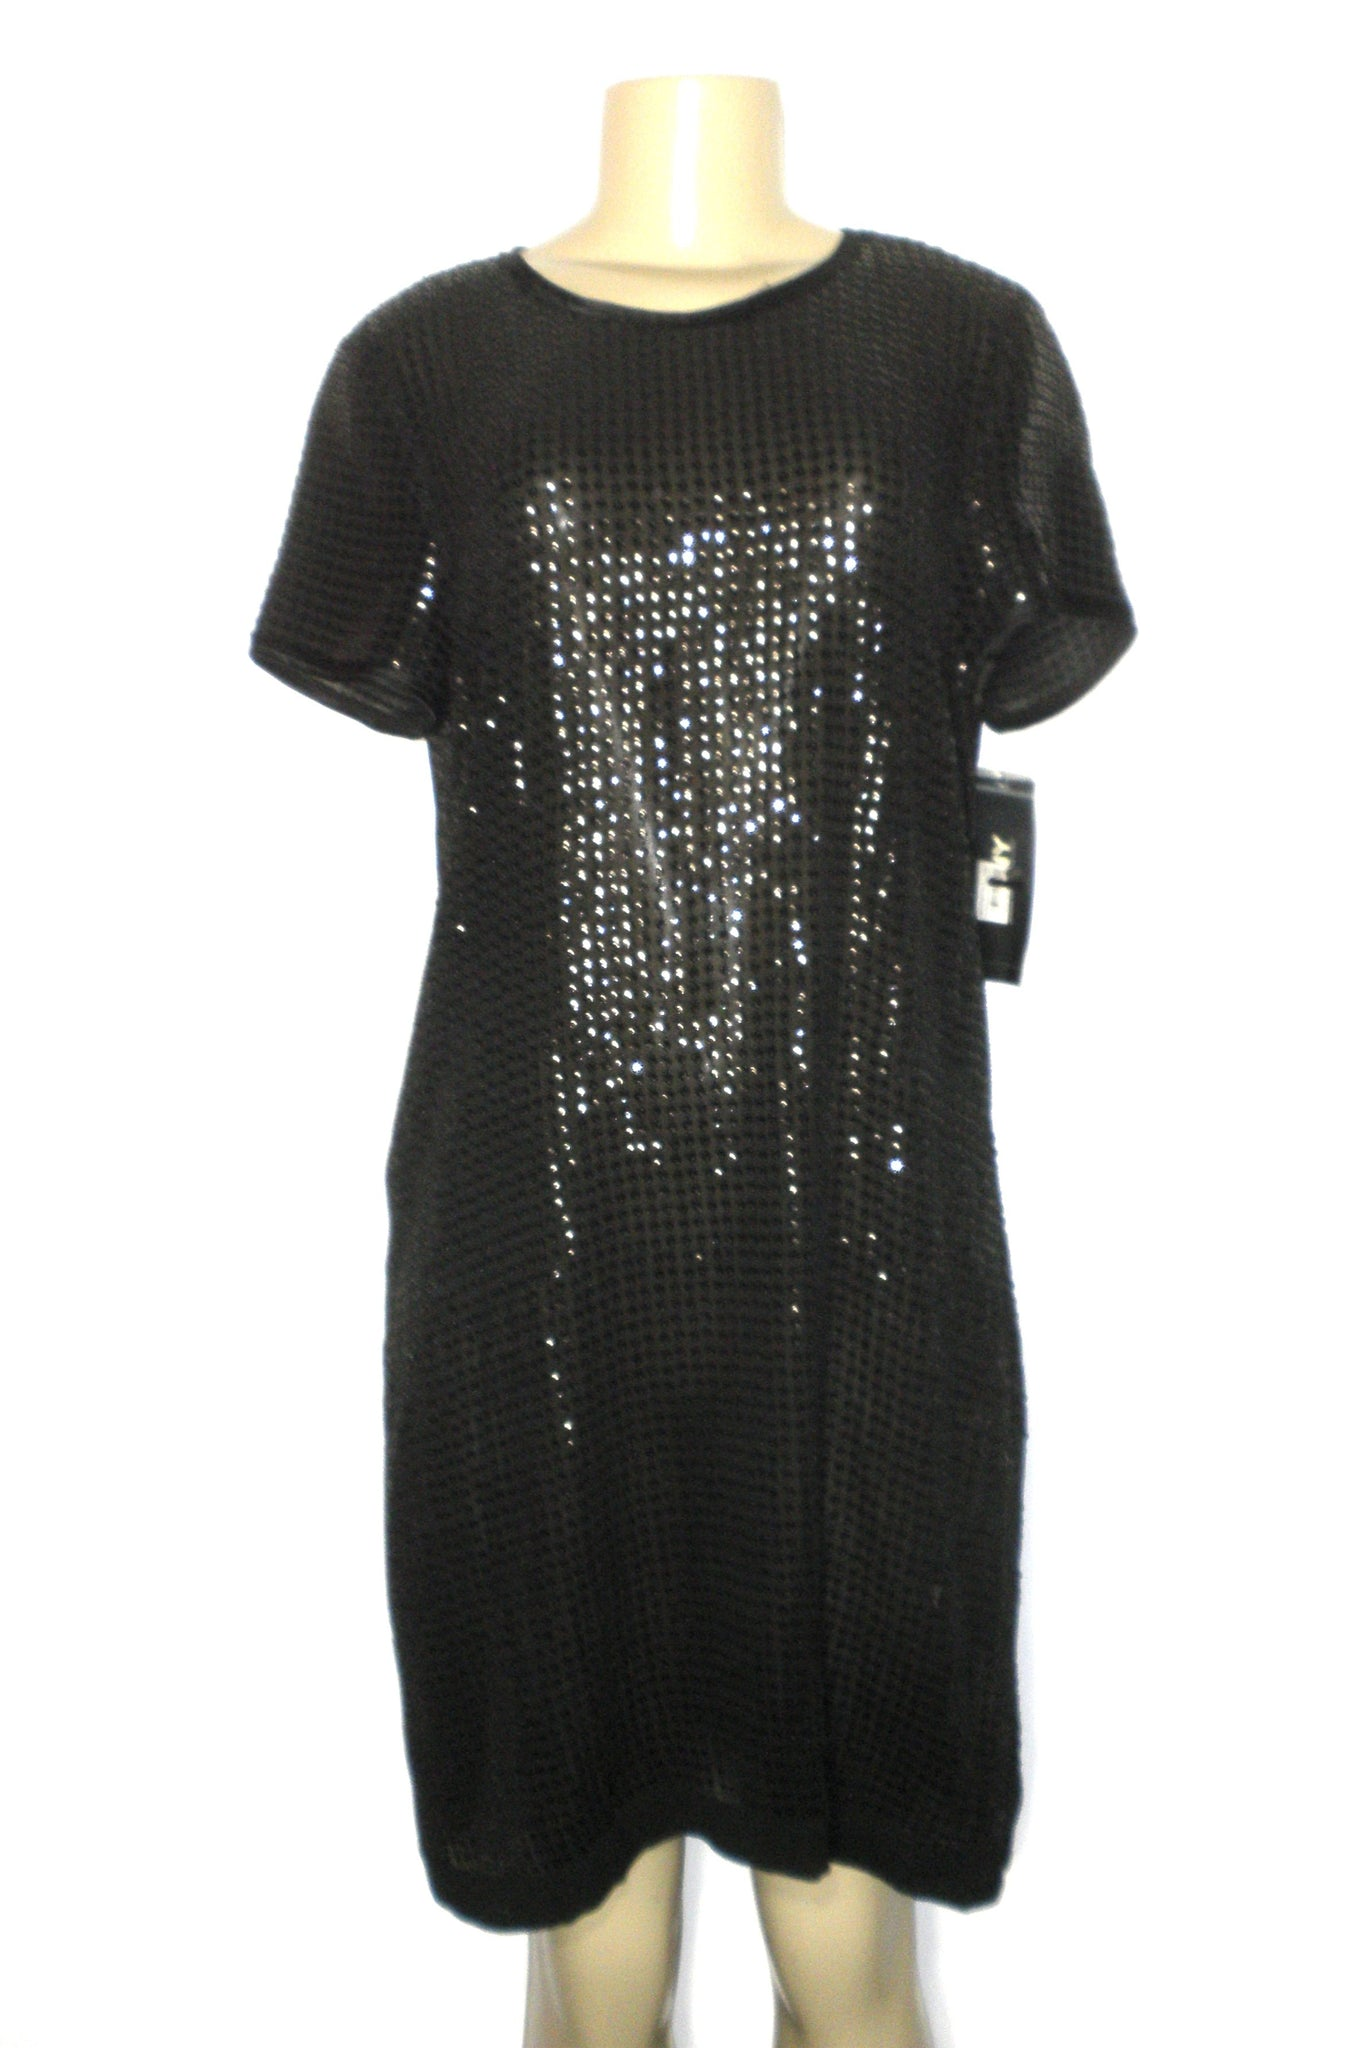 DKNY Black Sequin Dress - Size 10 - New With Tags